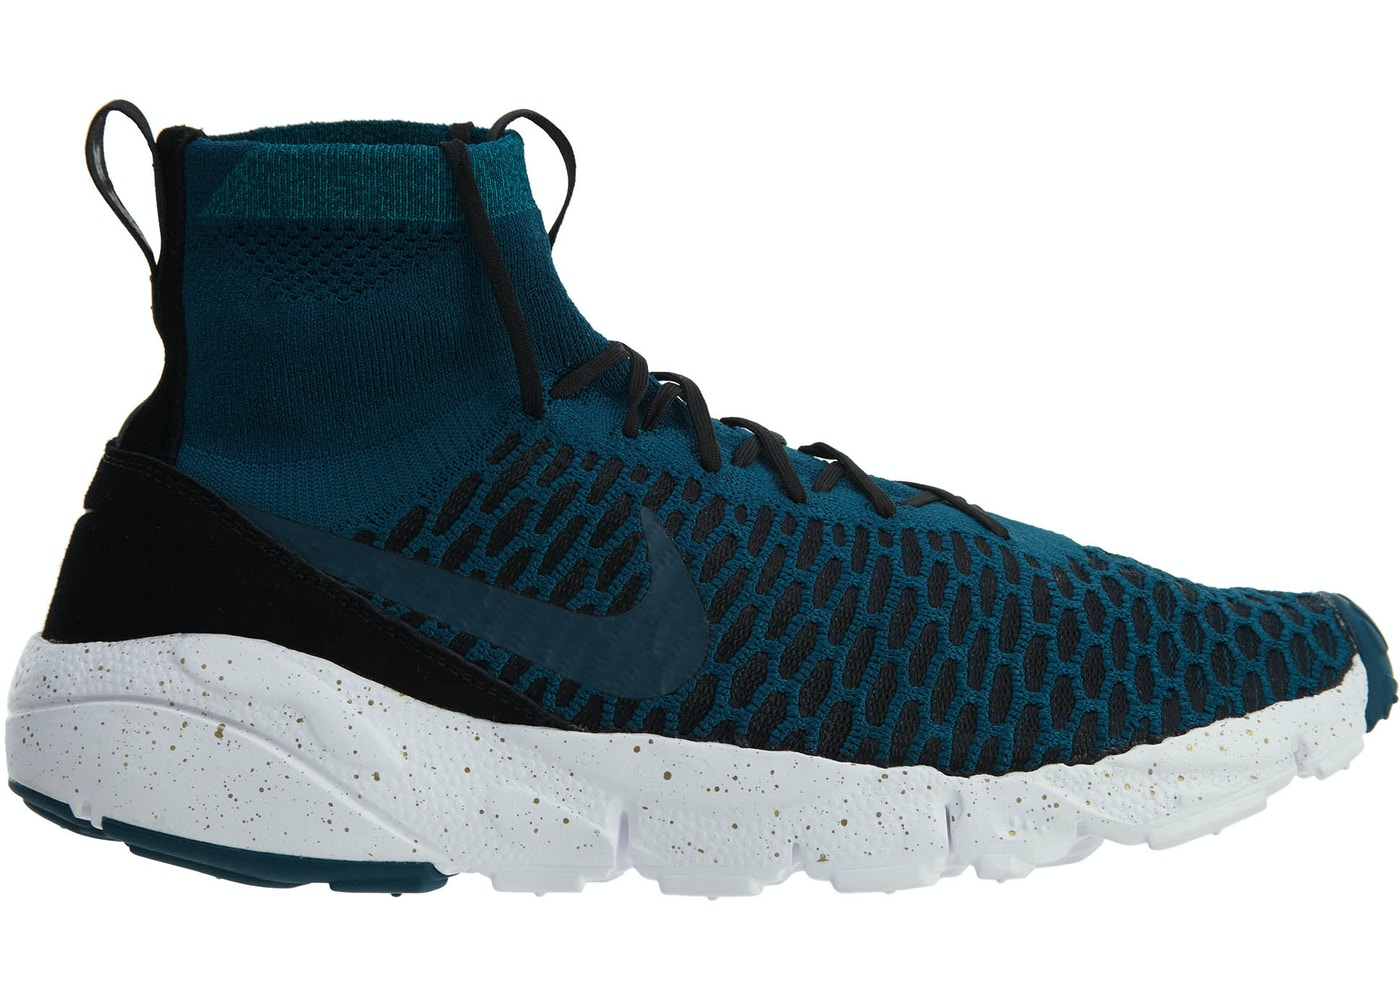 7a07cefdf6f2 Nike Air Footscape Magista Fk Fc Midnight Turquise Midnight  Turquise-Black-R Tl